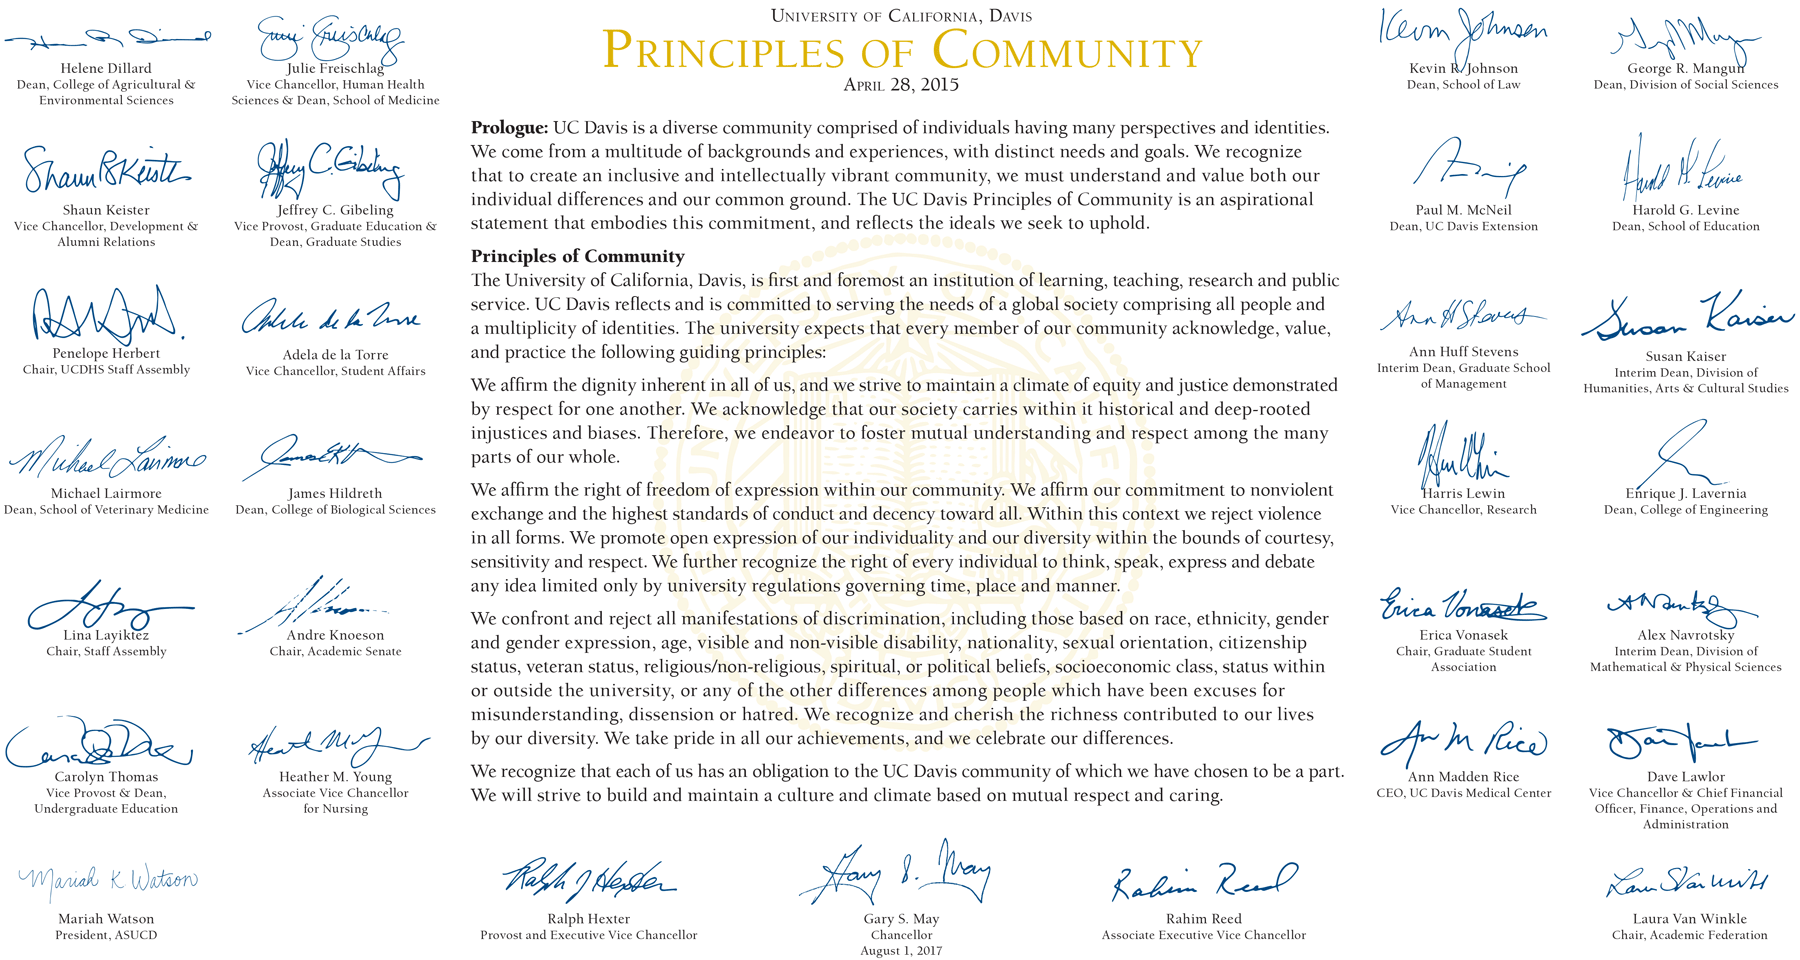 UC Davis' Principles of Community